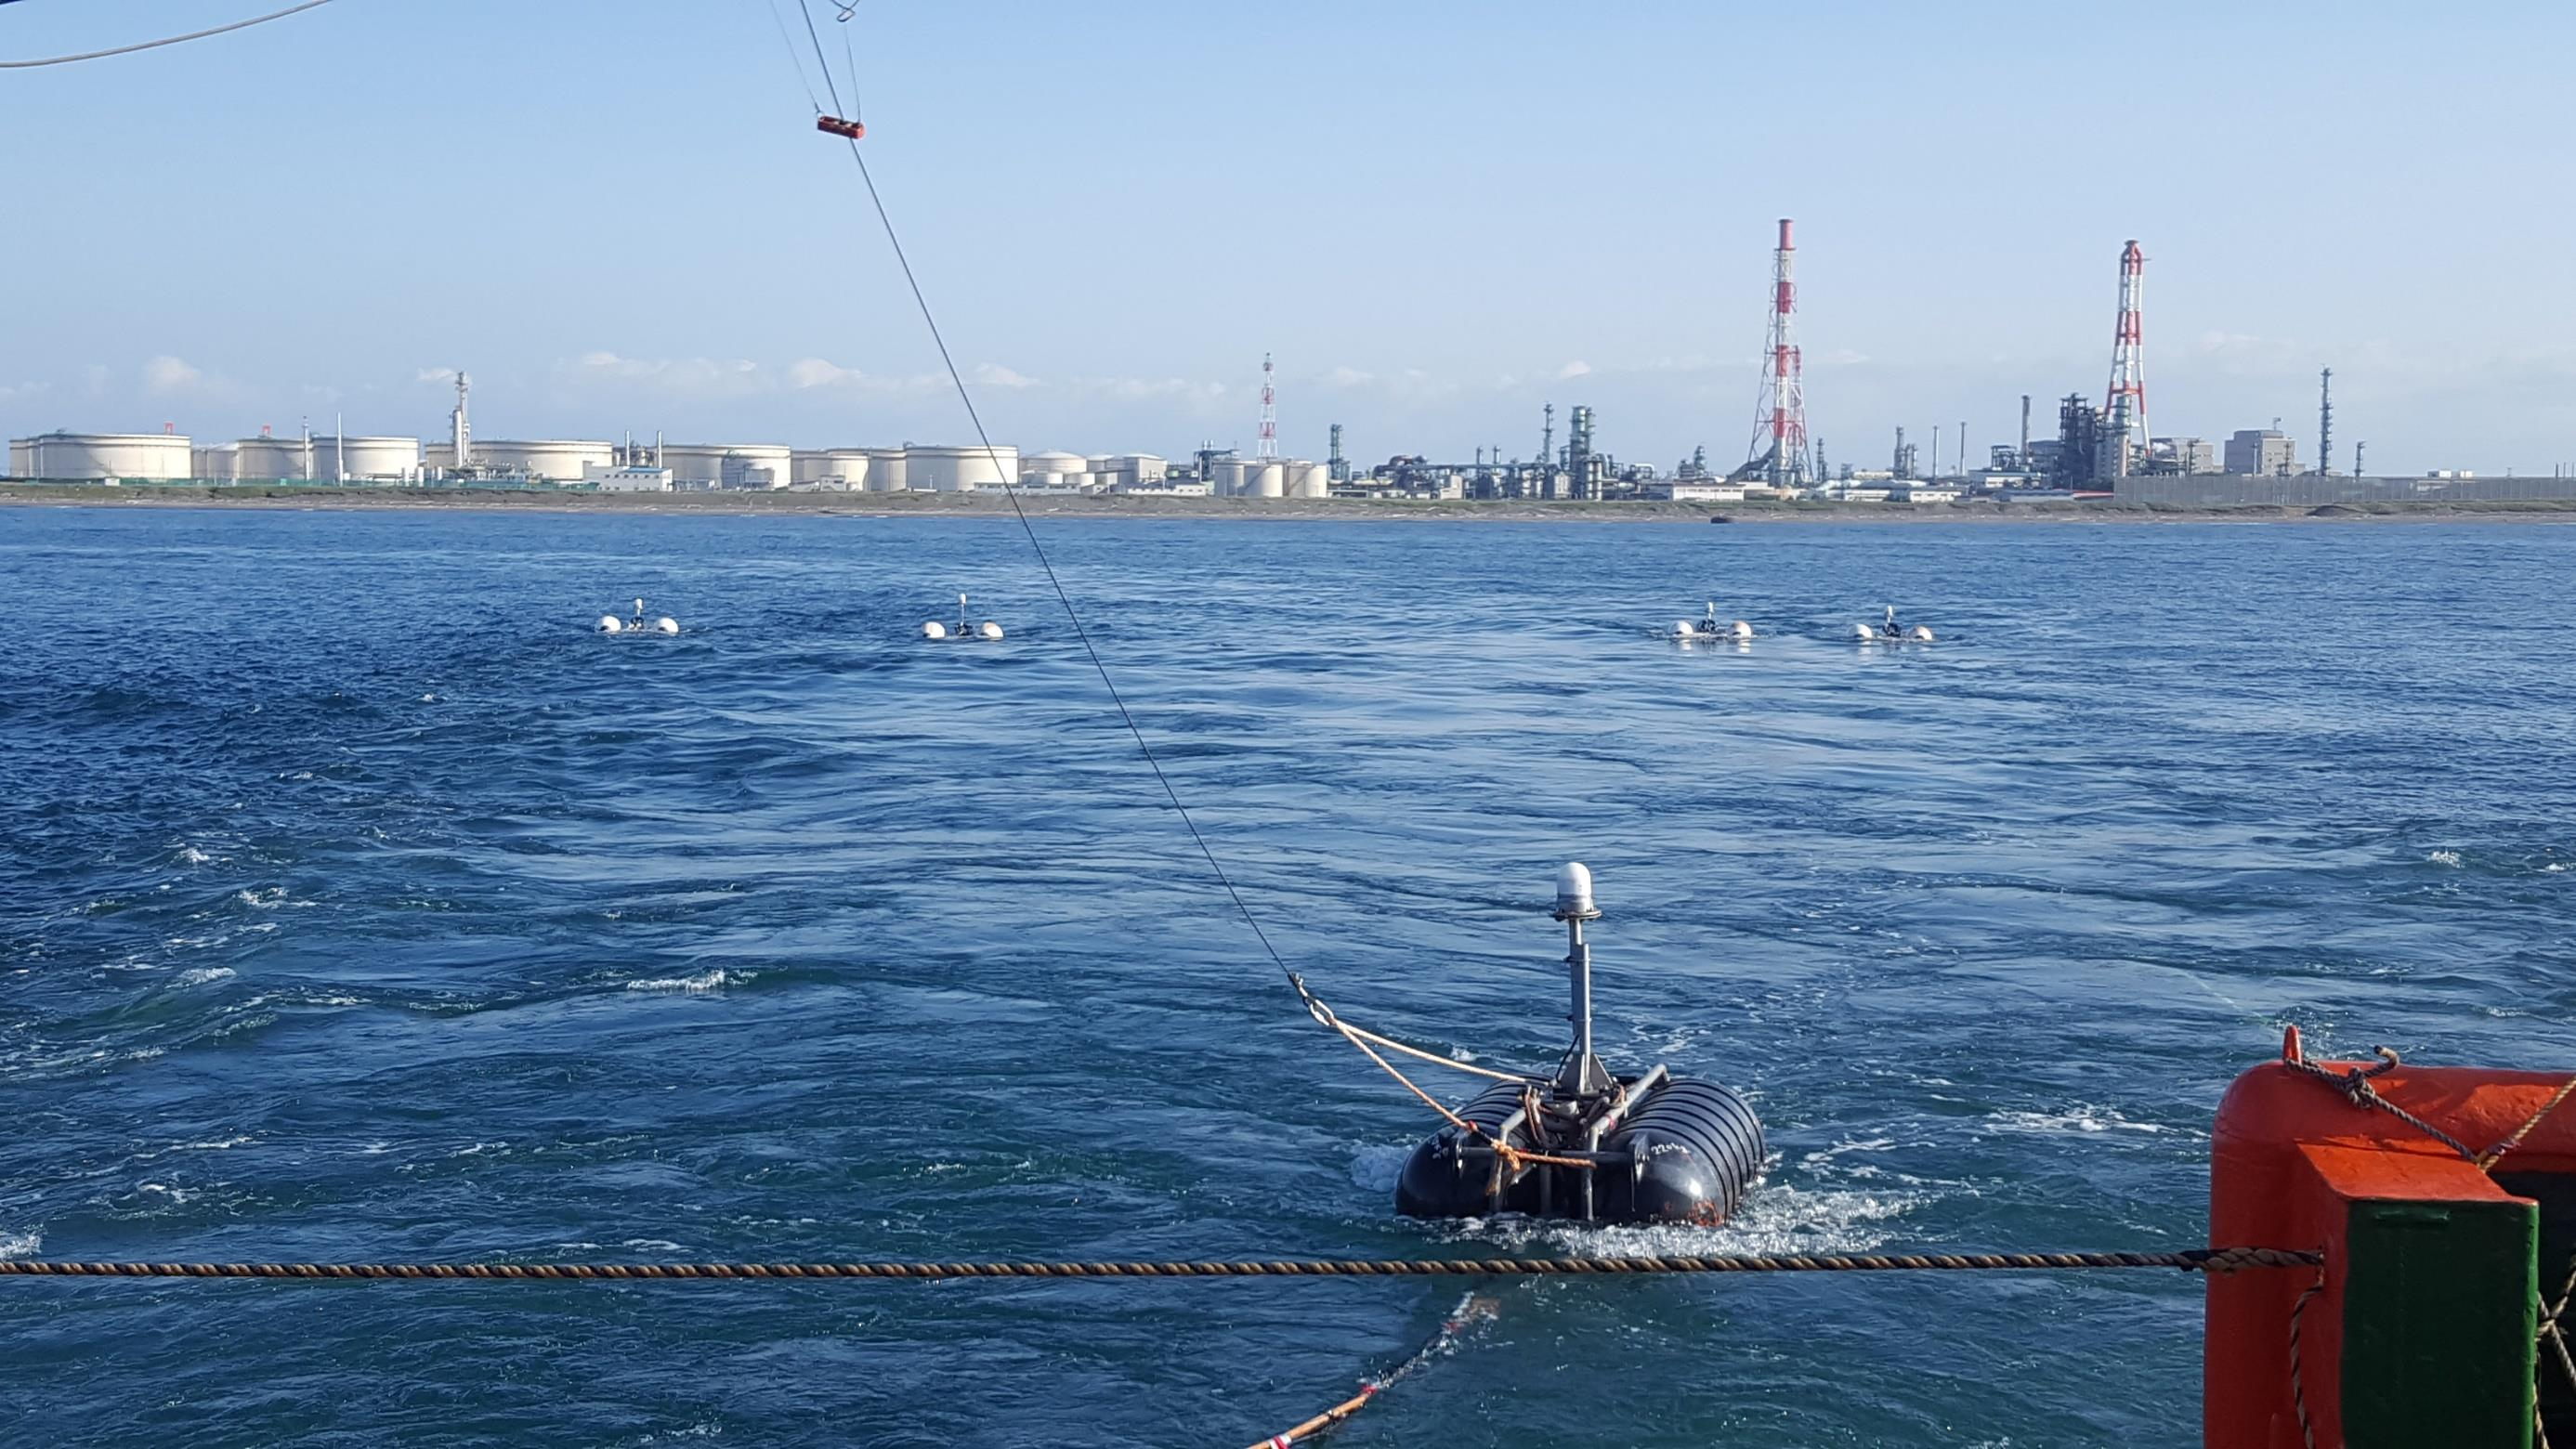 IMAGE OF SEISMIC SOURCE FLOATING ON THE WATER WITH THE TOMAKOMAI PORT IN THE DISTANCE